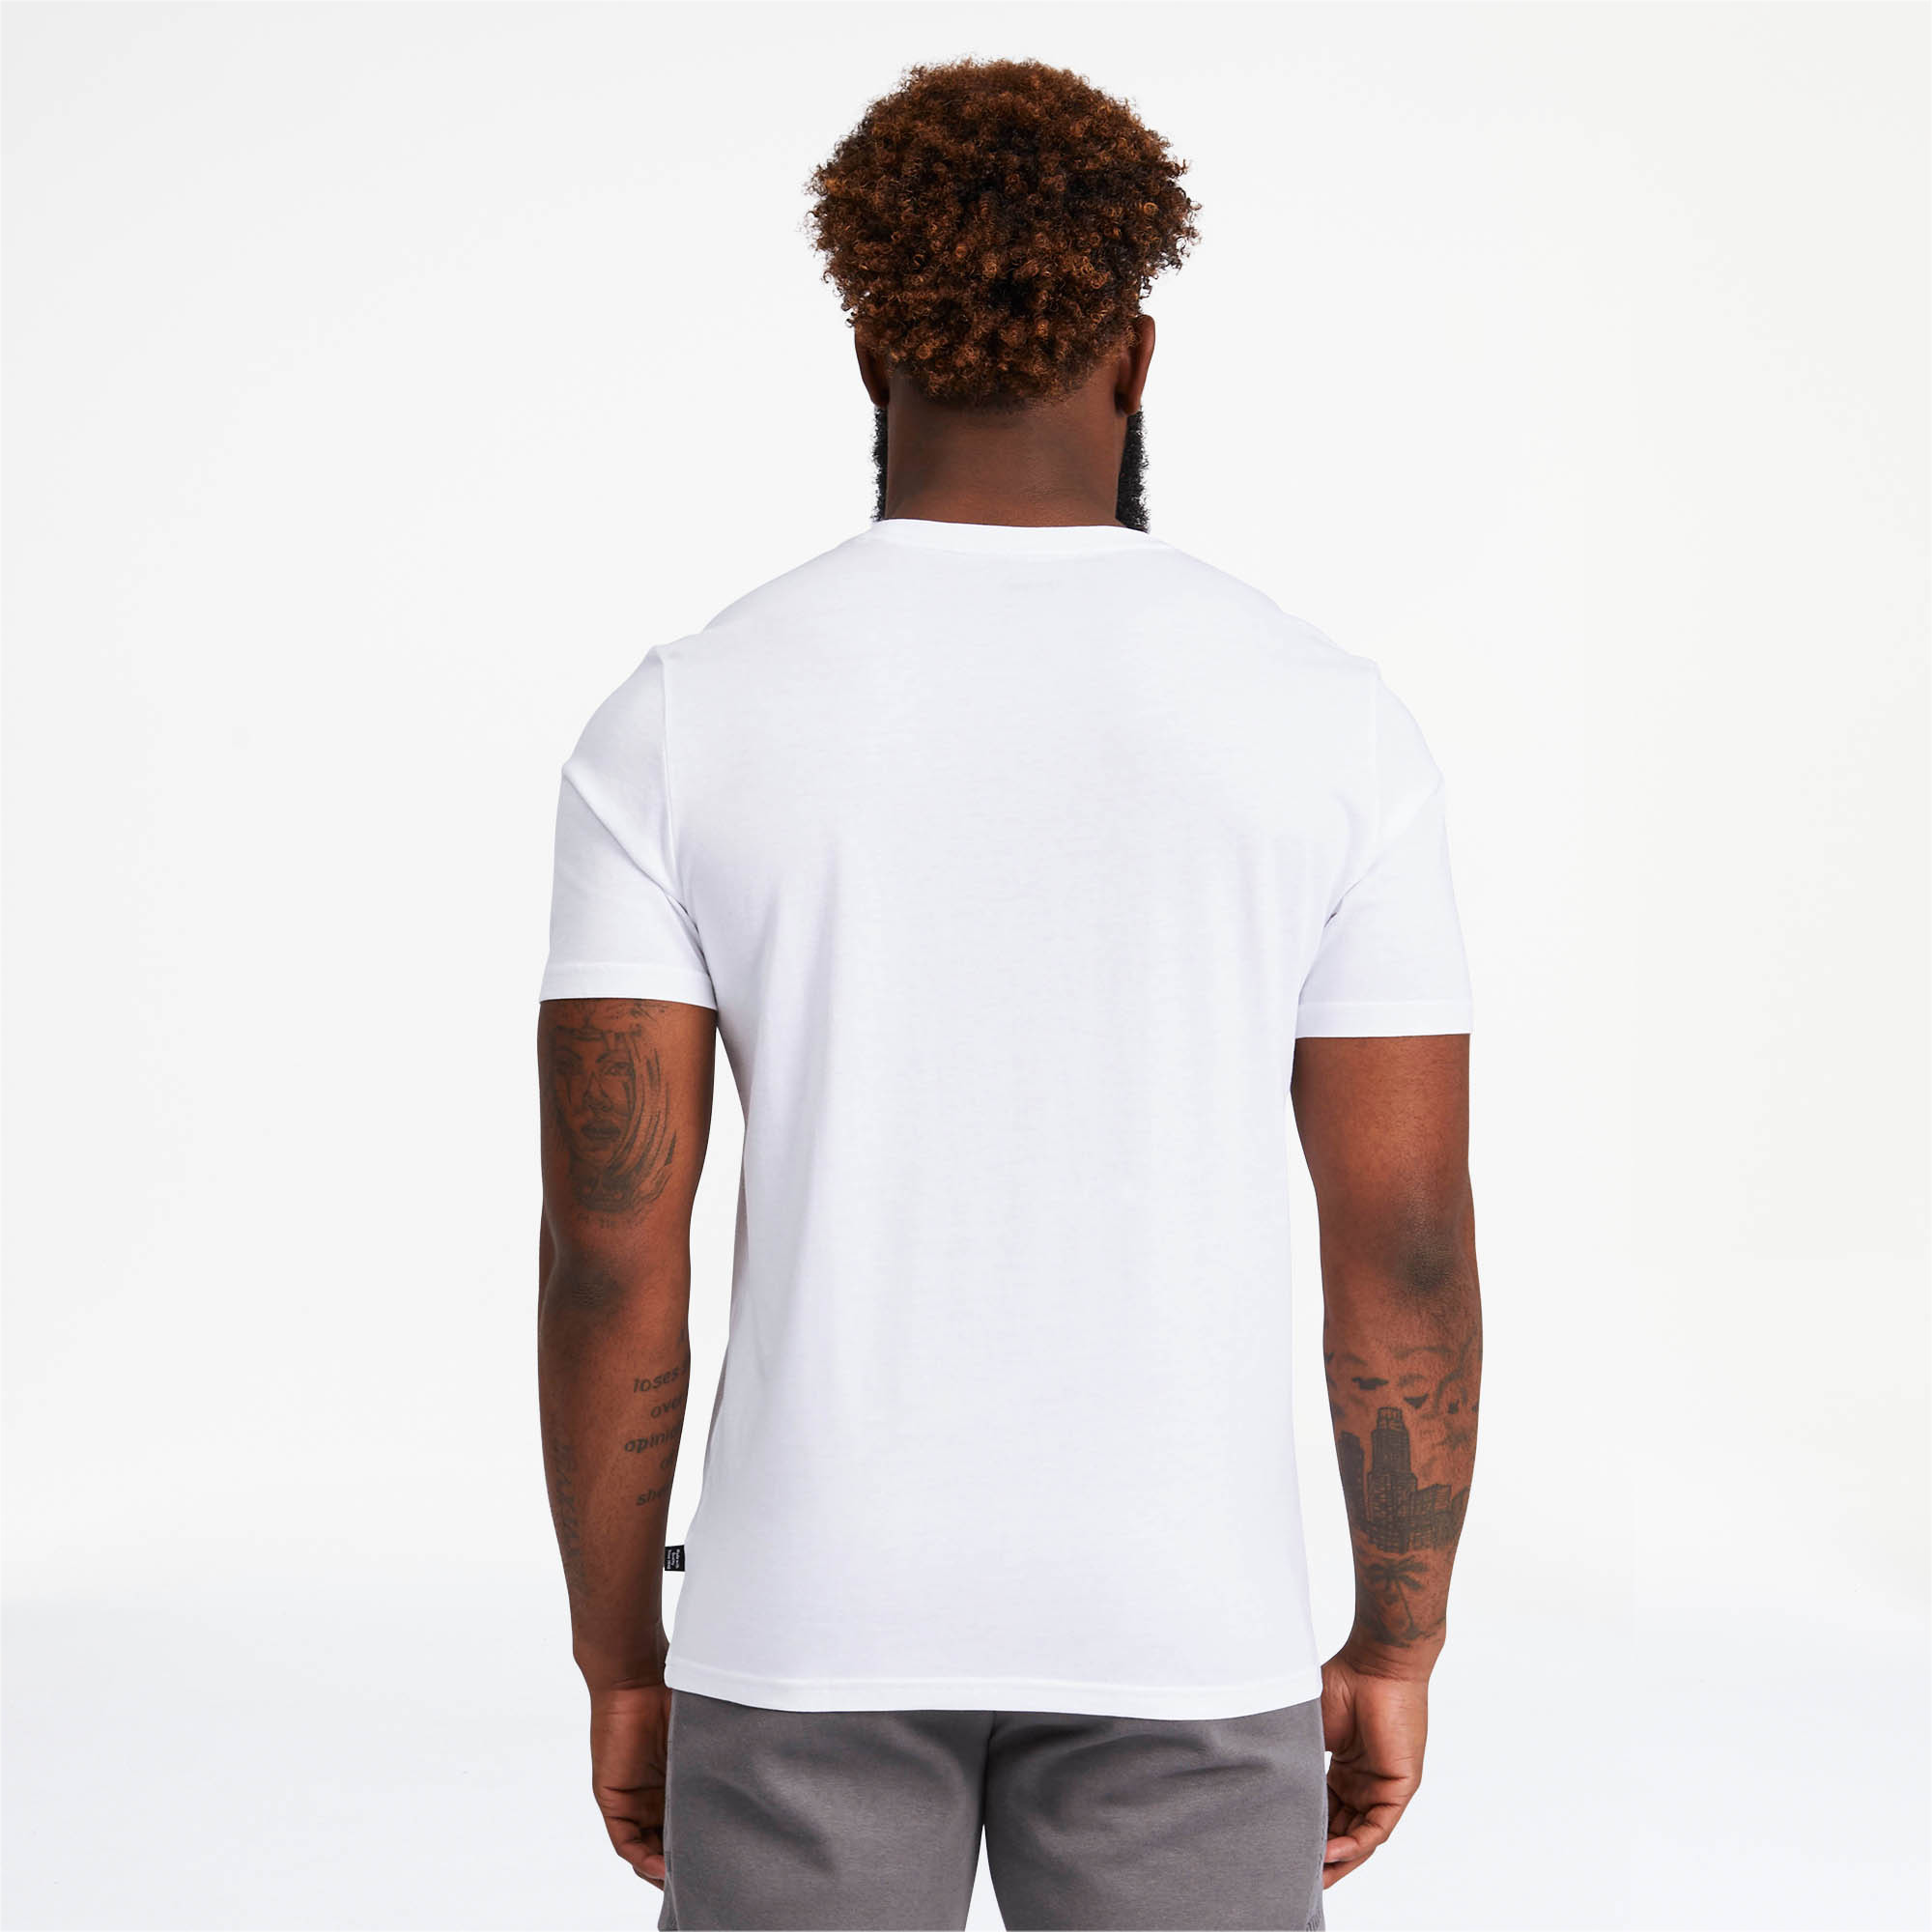 PUMA-Logo-AOP-Pack-Men-039-s-Graphic-Tee-Men-Tee-Basics thumbnail 10